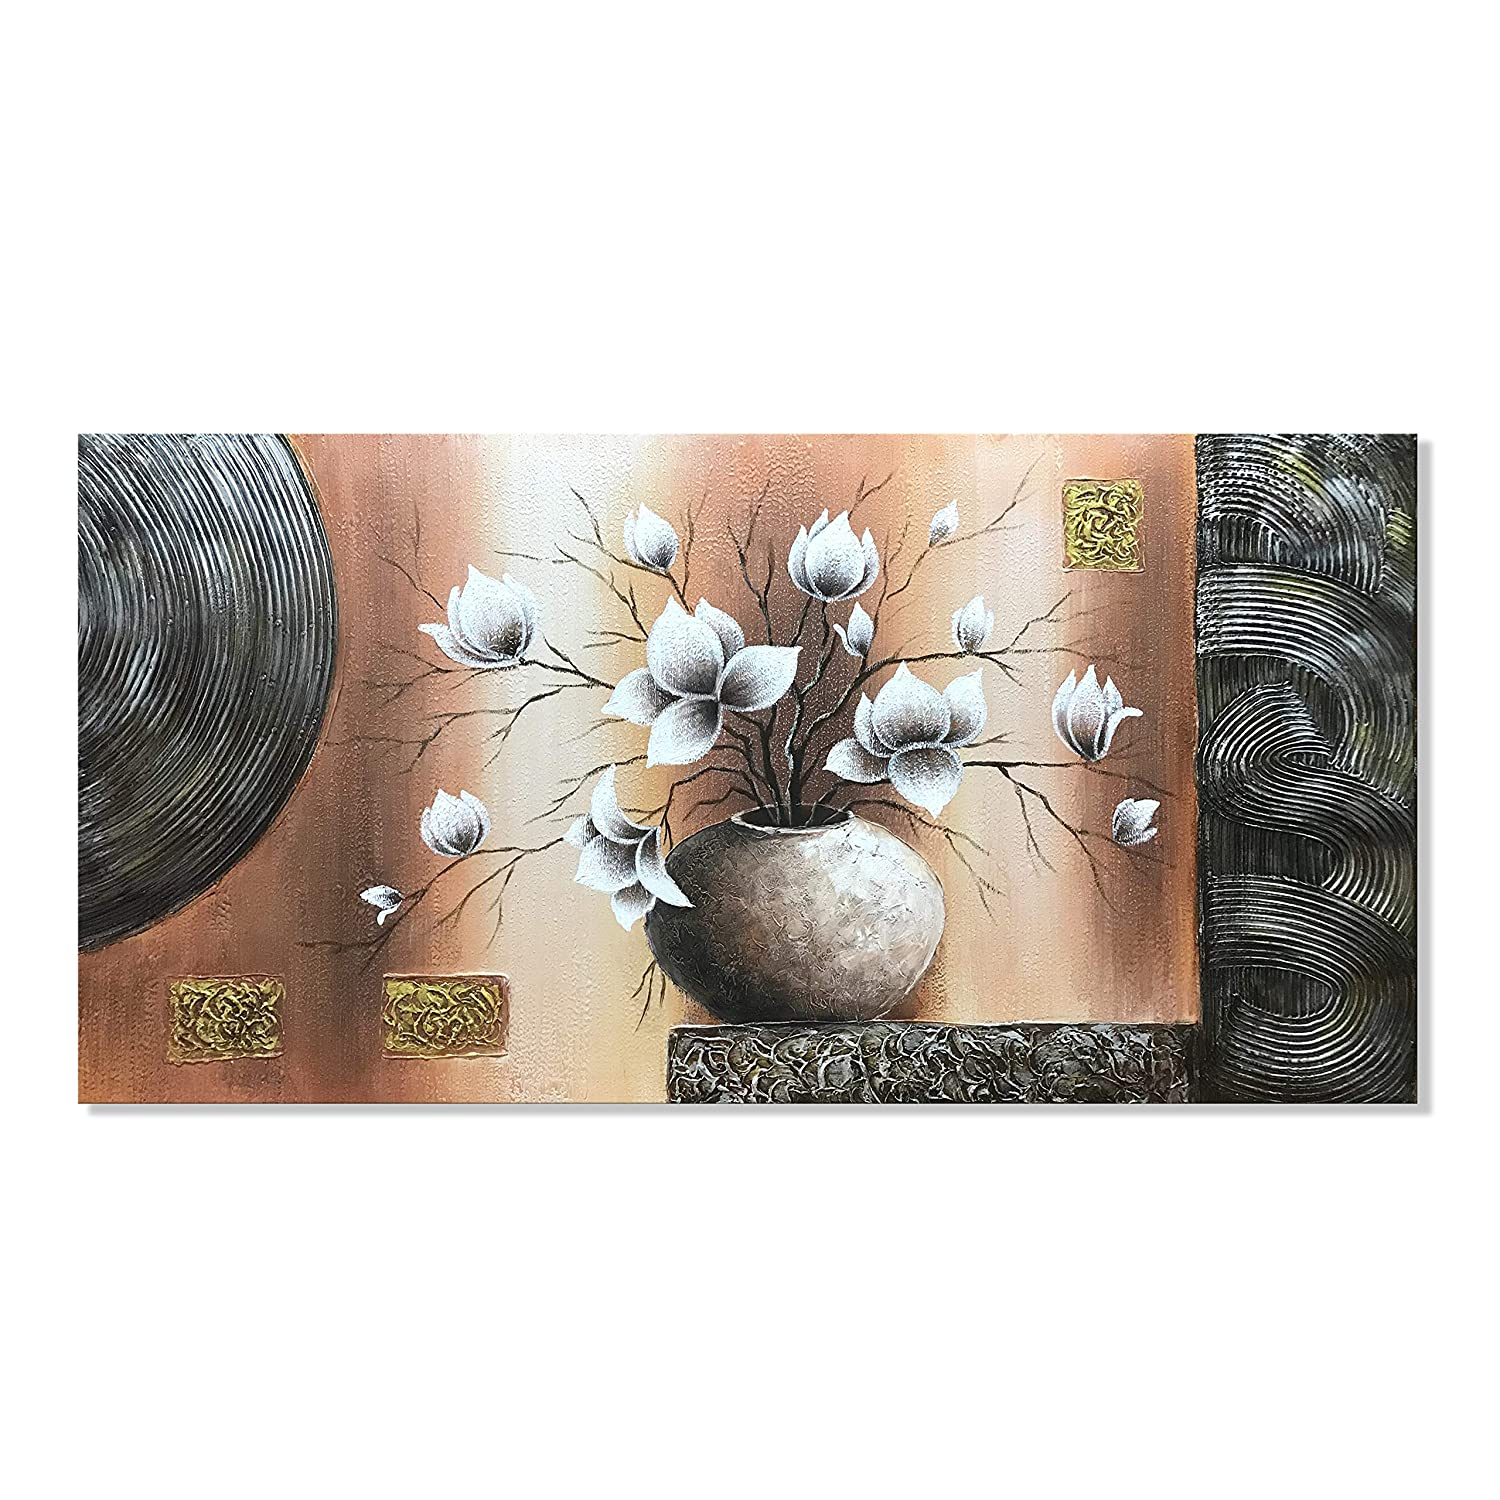 zoinart 3D Oil Painting 24x48inch 100% Hand Painted Large Abstract White Magnolia Flowers Paintings Modern Canvas Wall Art Floral Artwork for Home Walls Ready for Hanging